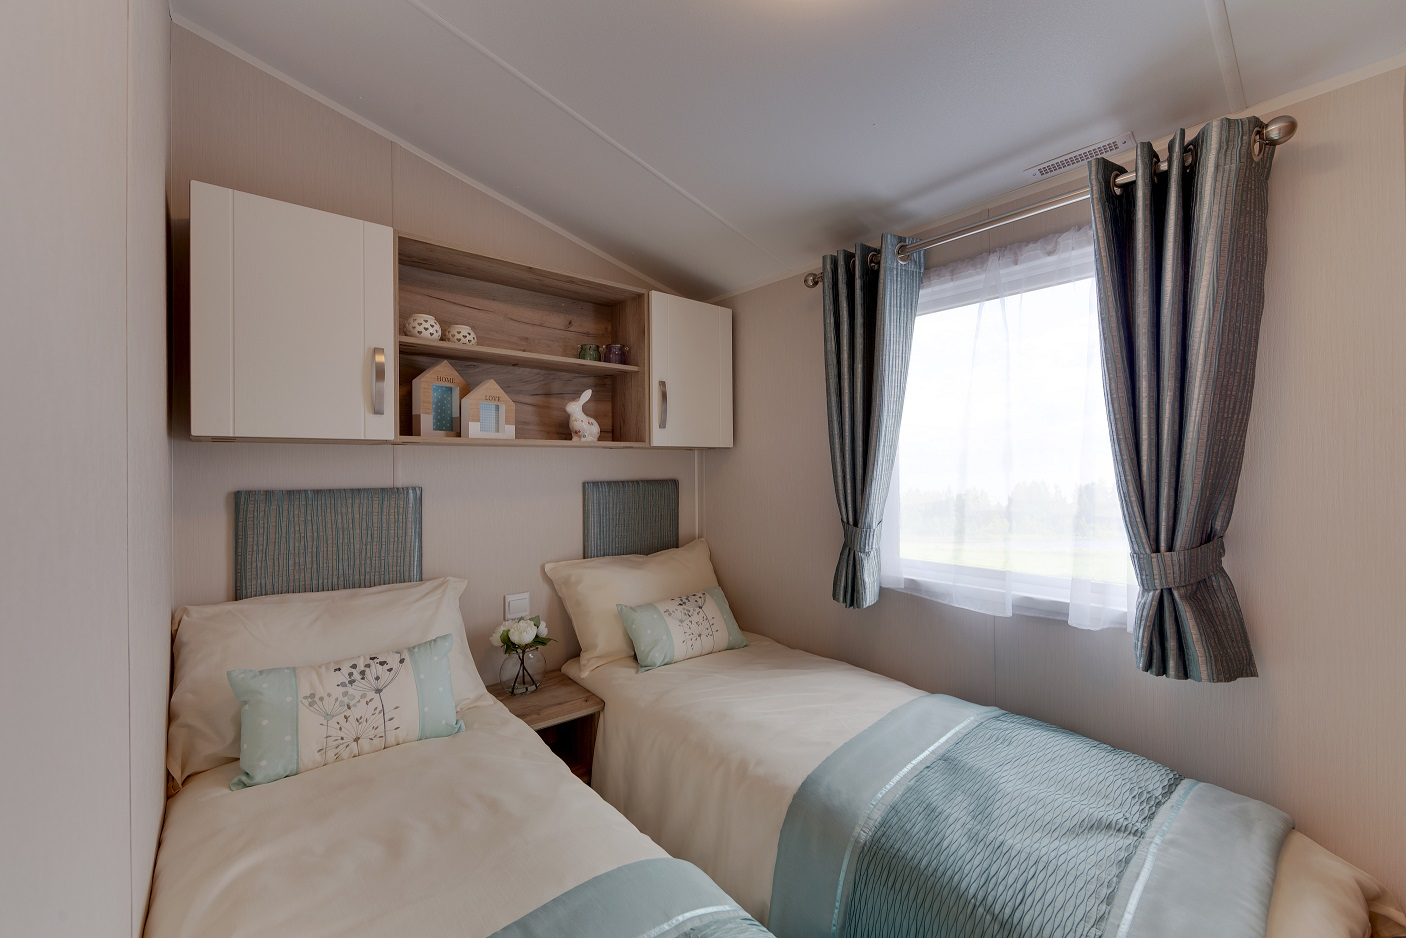 Willerby Skye - 3 Bedrooms: New Static Caravans and Holiday Homes for Sale, Adderstone, Belford Image 4